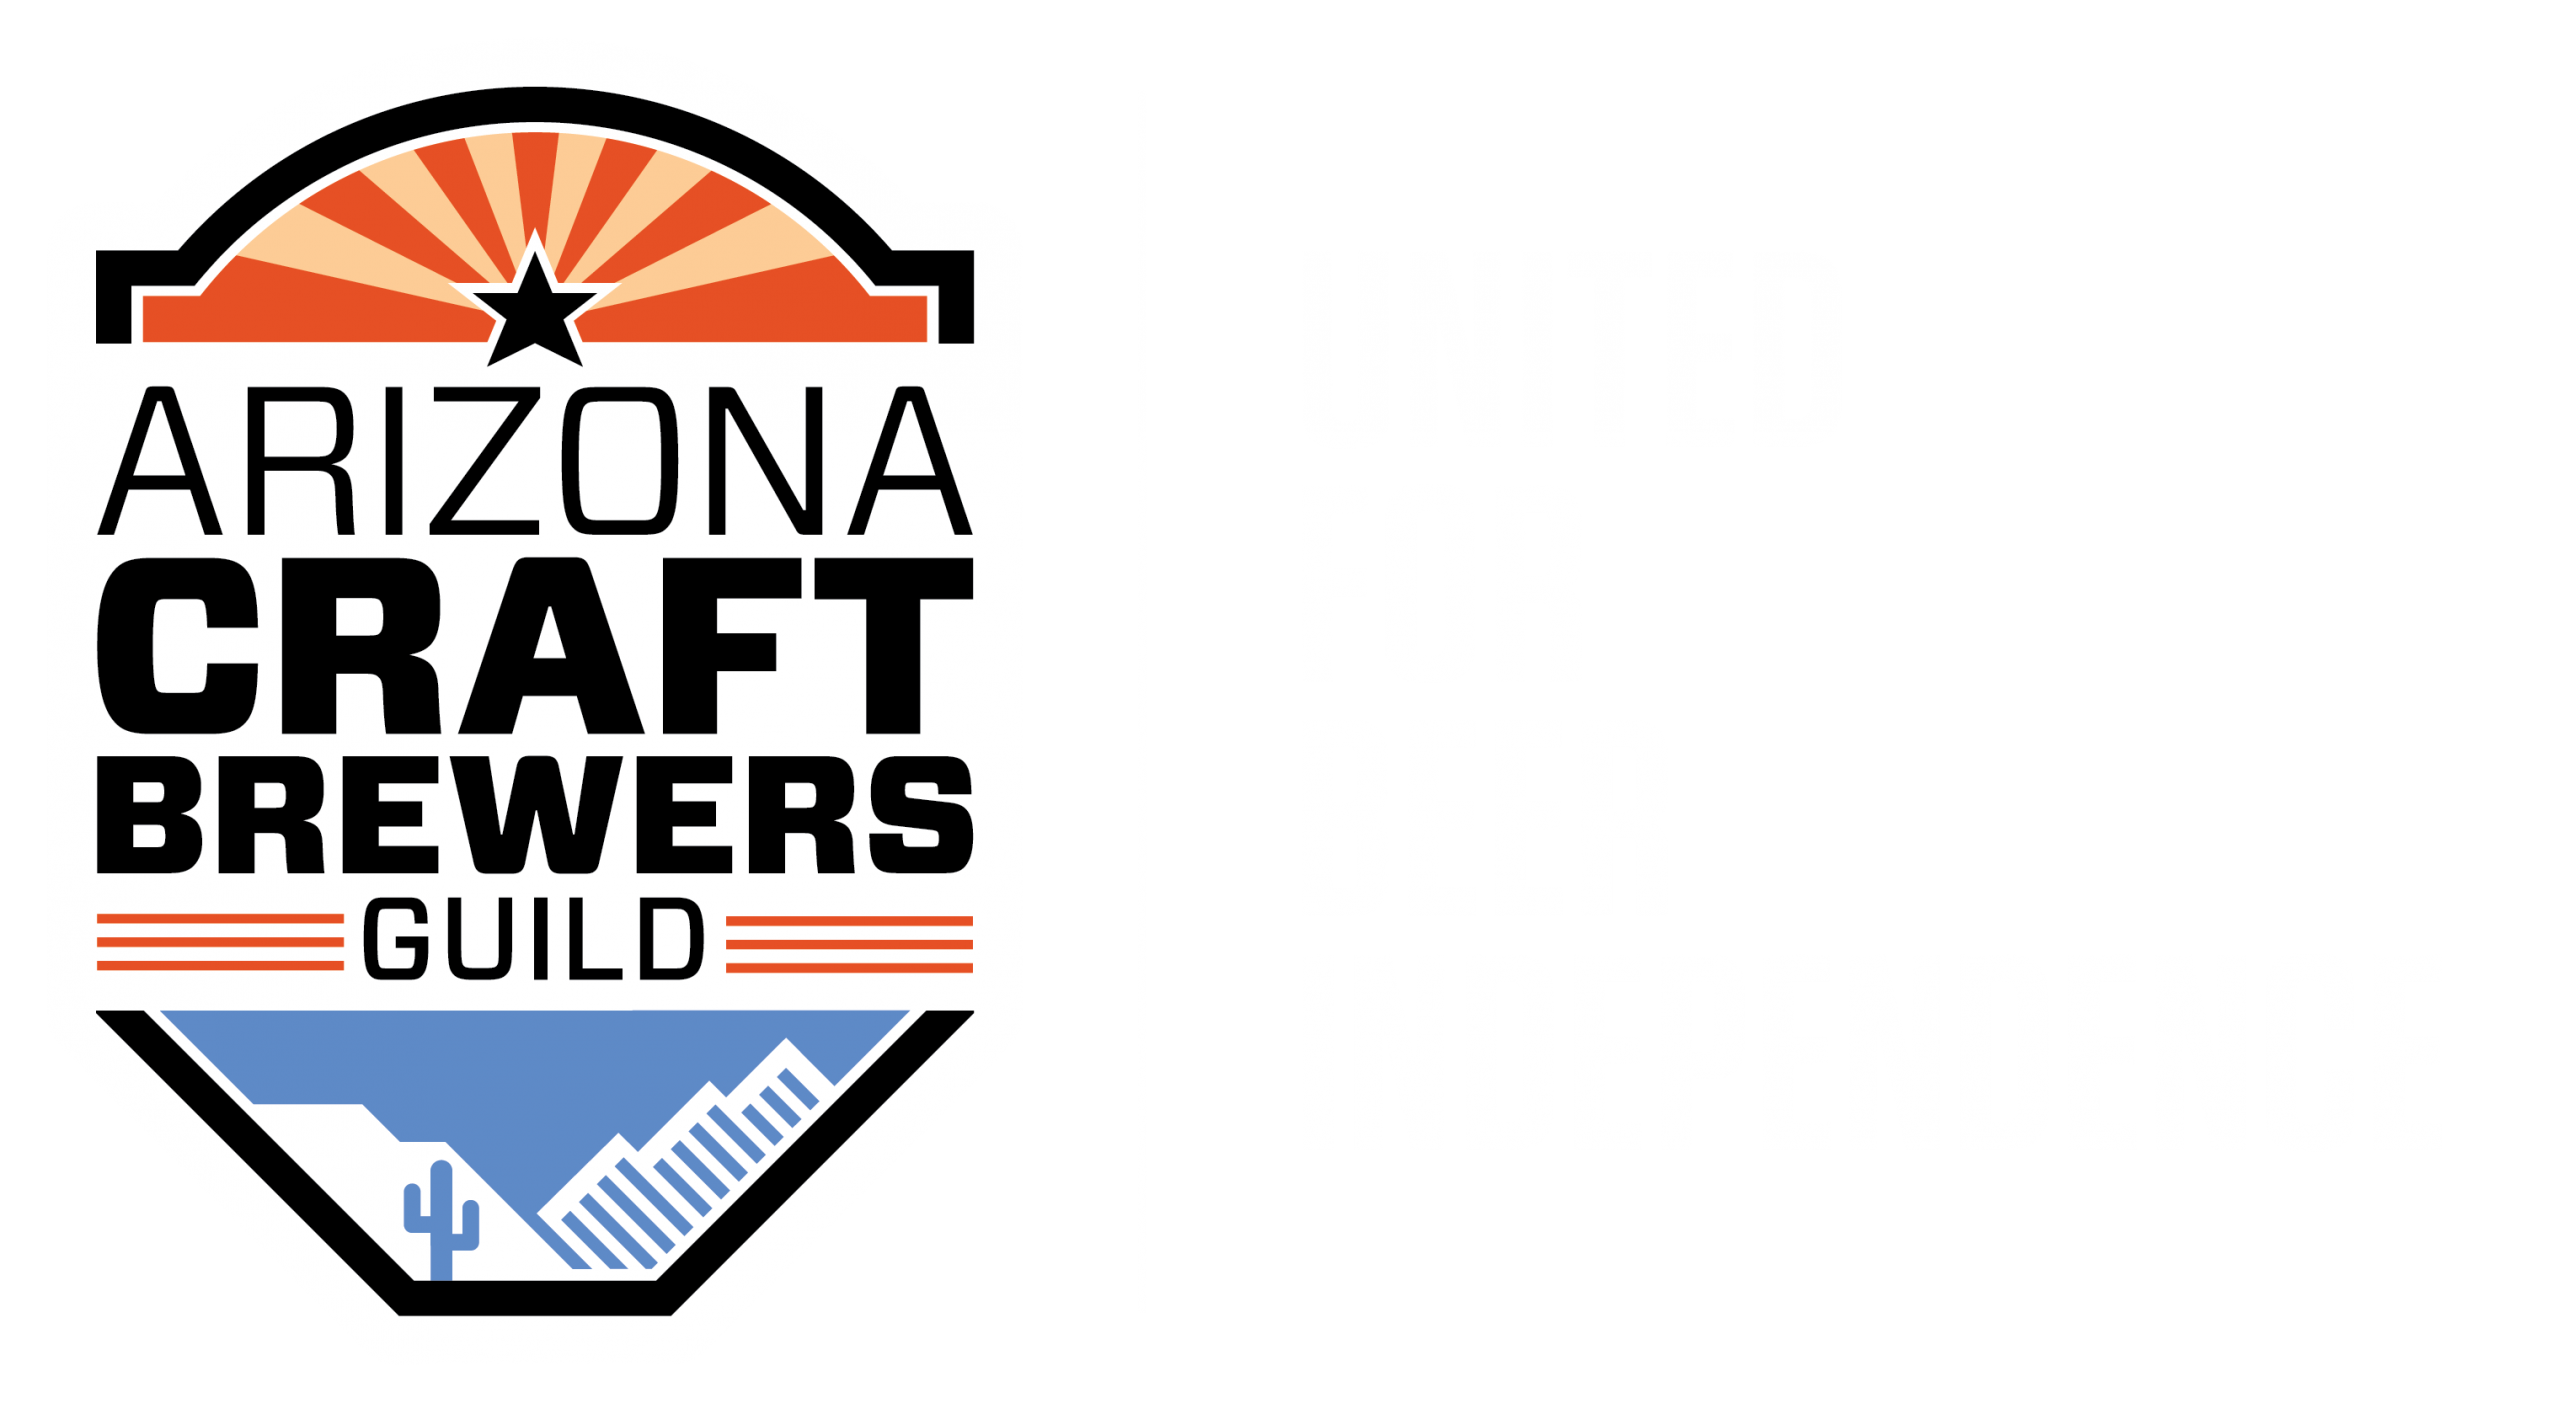 AZ brewery | Arizona Craft Brewers Guild | Page 16